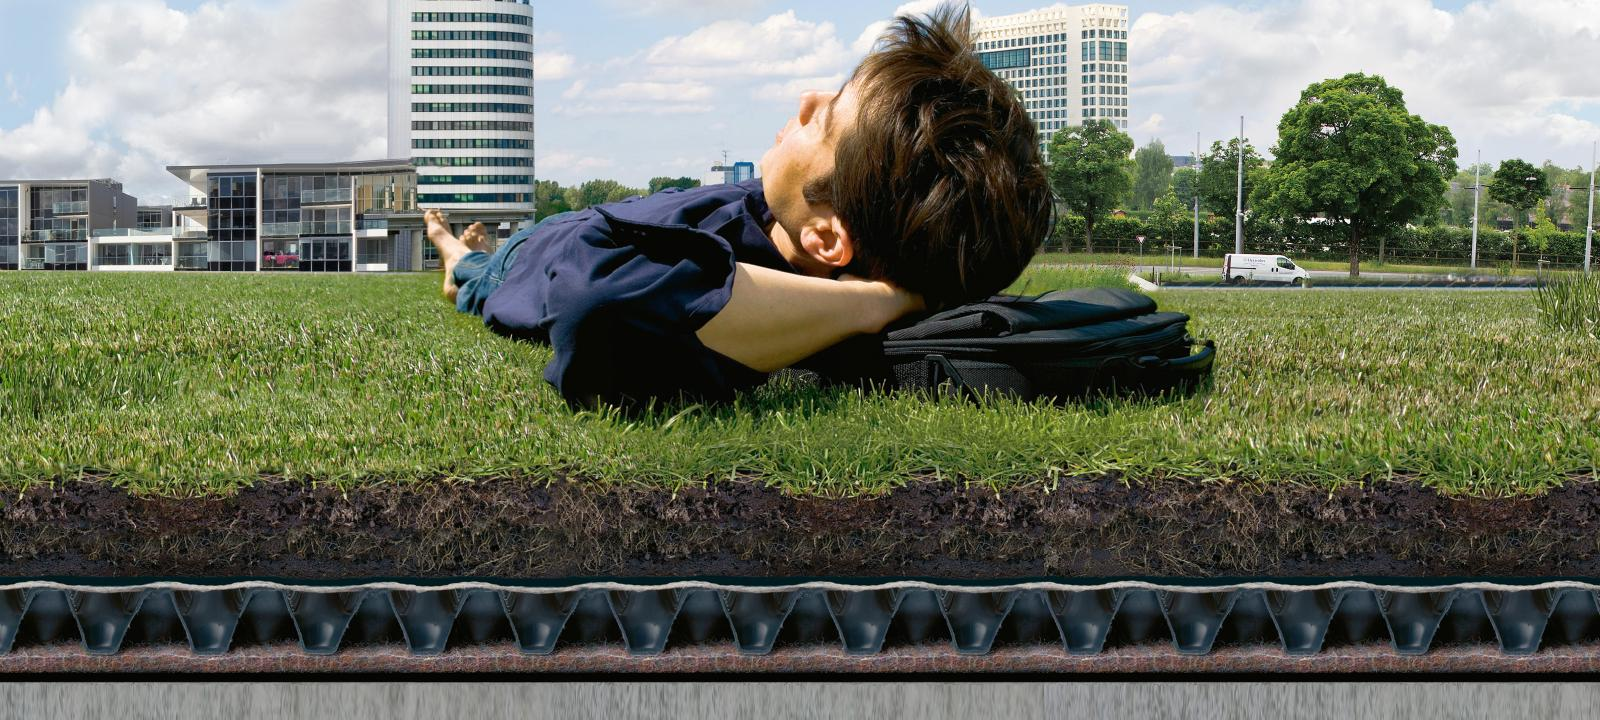 Man relaxing on a lawn established on a green roof system build-up